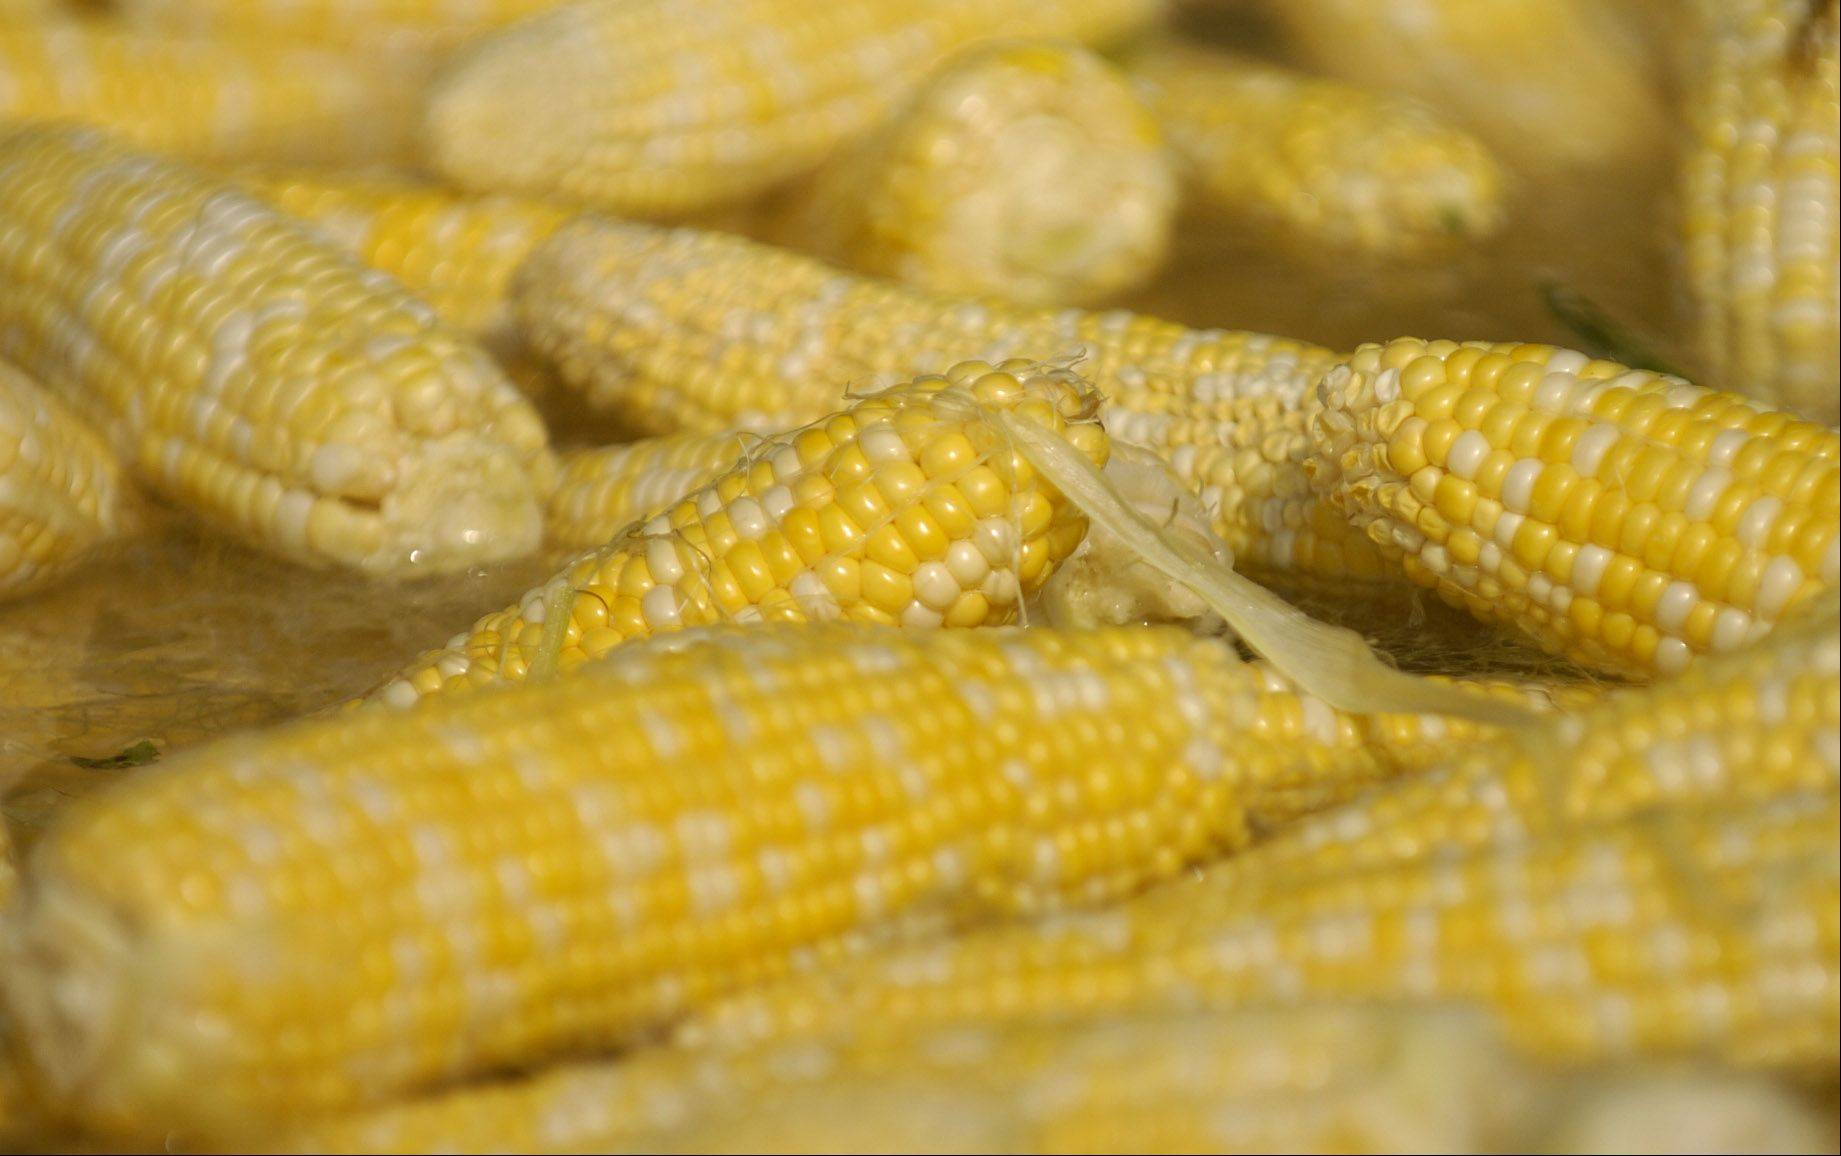 These are some of the 10,000 ears of bicolor corn await cooking at the Sugar Grove Corn Boil.